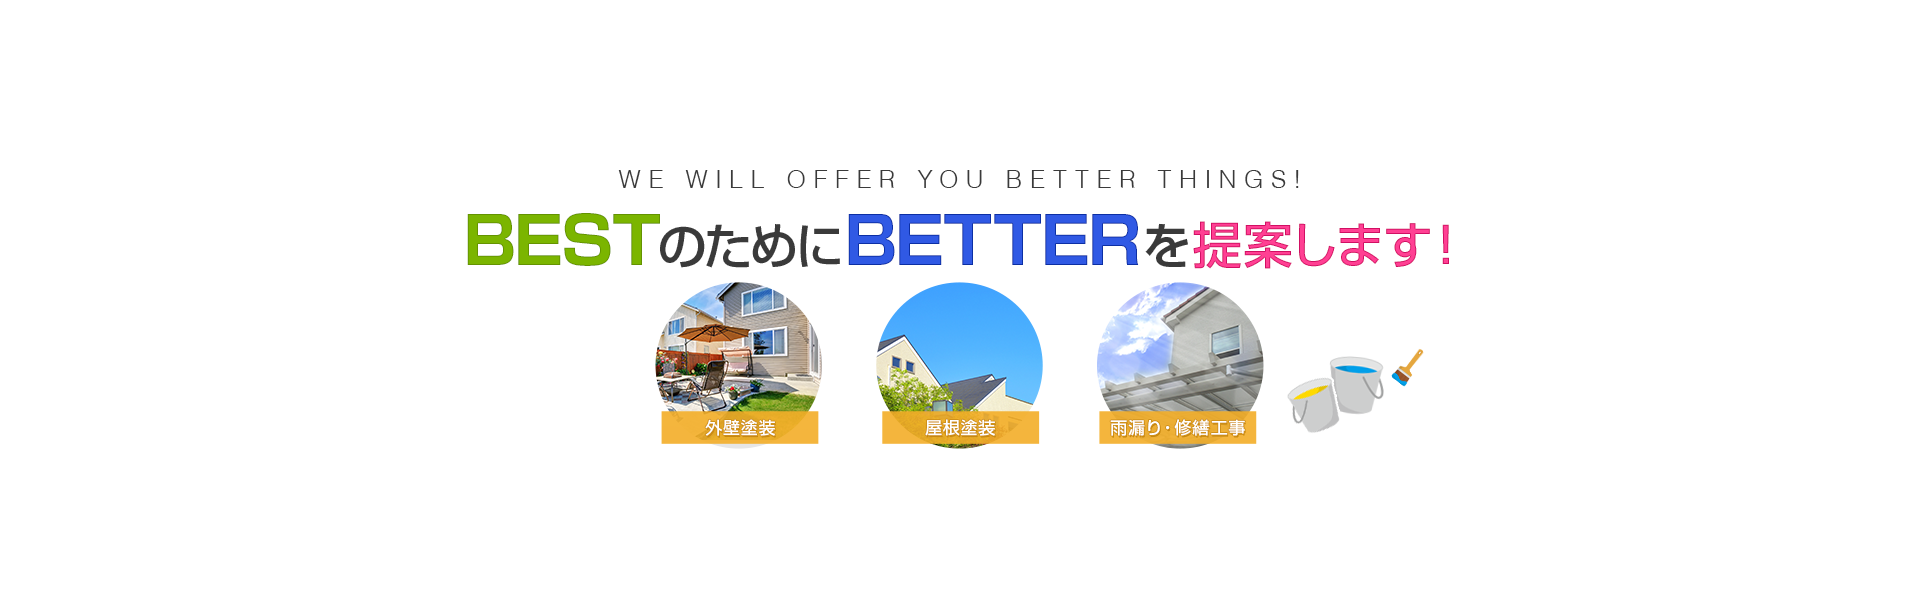 WE WILL OFFER YOU BETTER THINGS! BESTのためにBETTERを提案します!